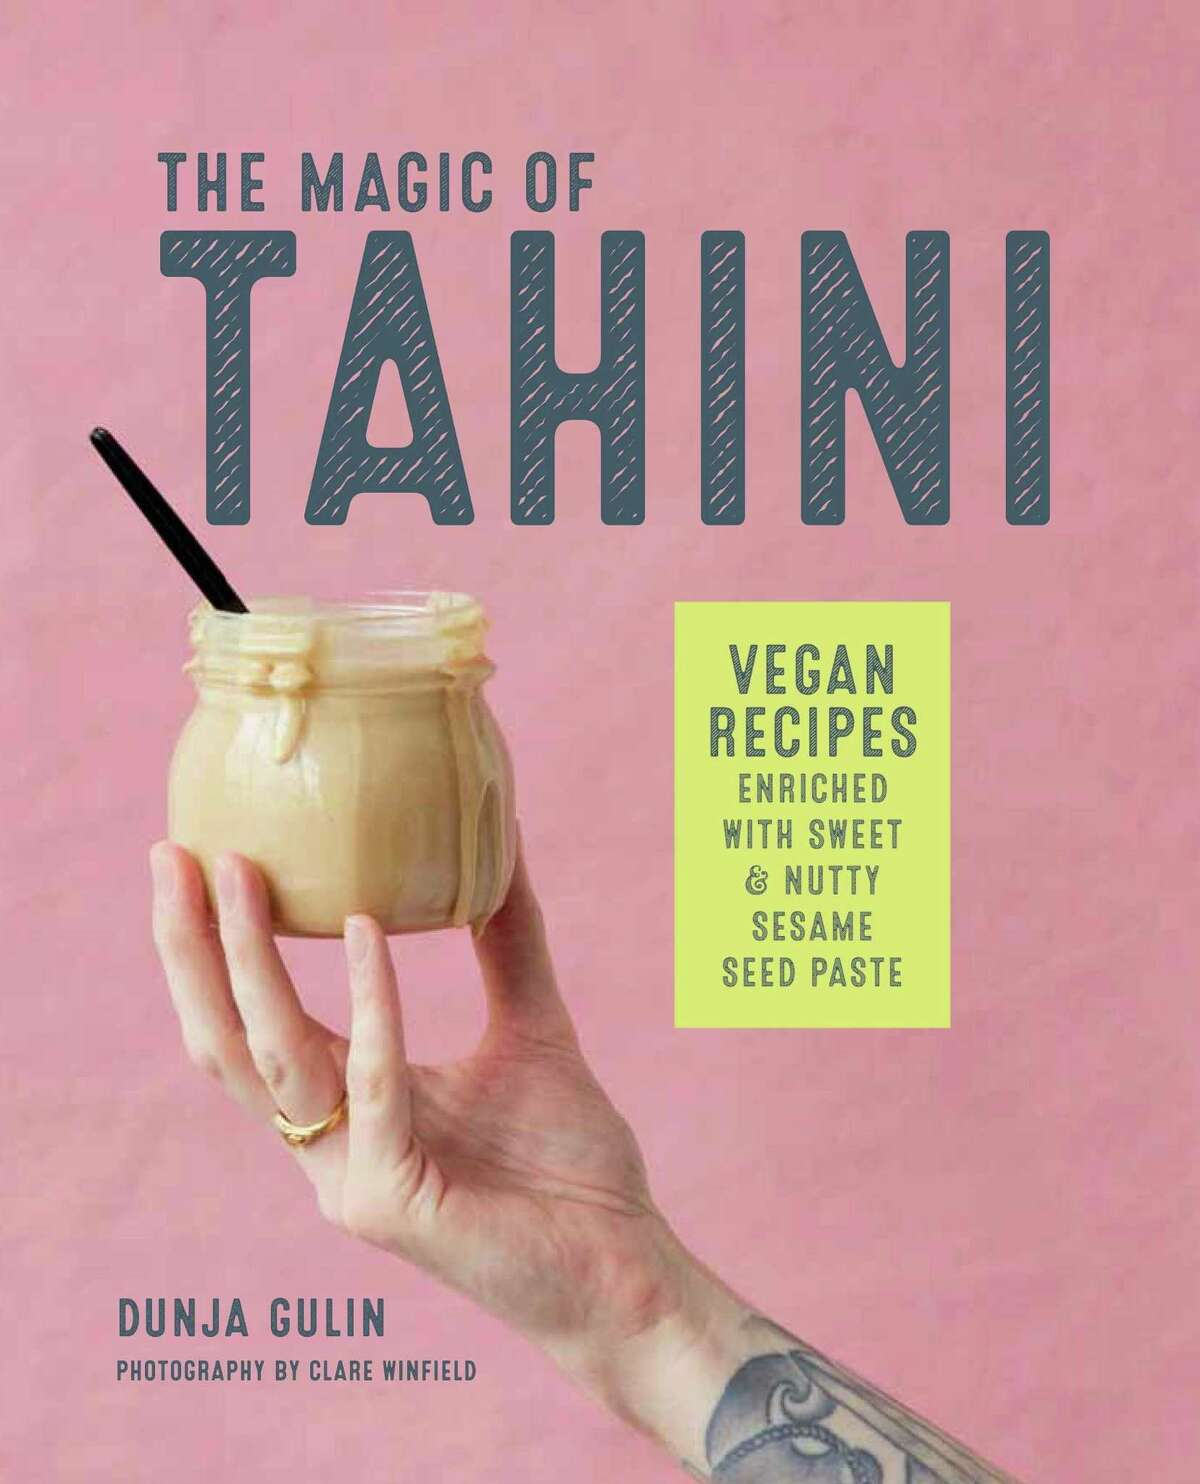 """""""The Magic of Tahini: Vegan Recipes Enriched with Sweet & Nutty Sesame Seed Paste,"""" by Dunja Gulin (2019, Ryland Peter & Small, $14.95)"""